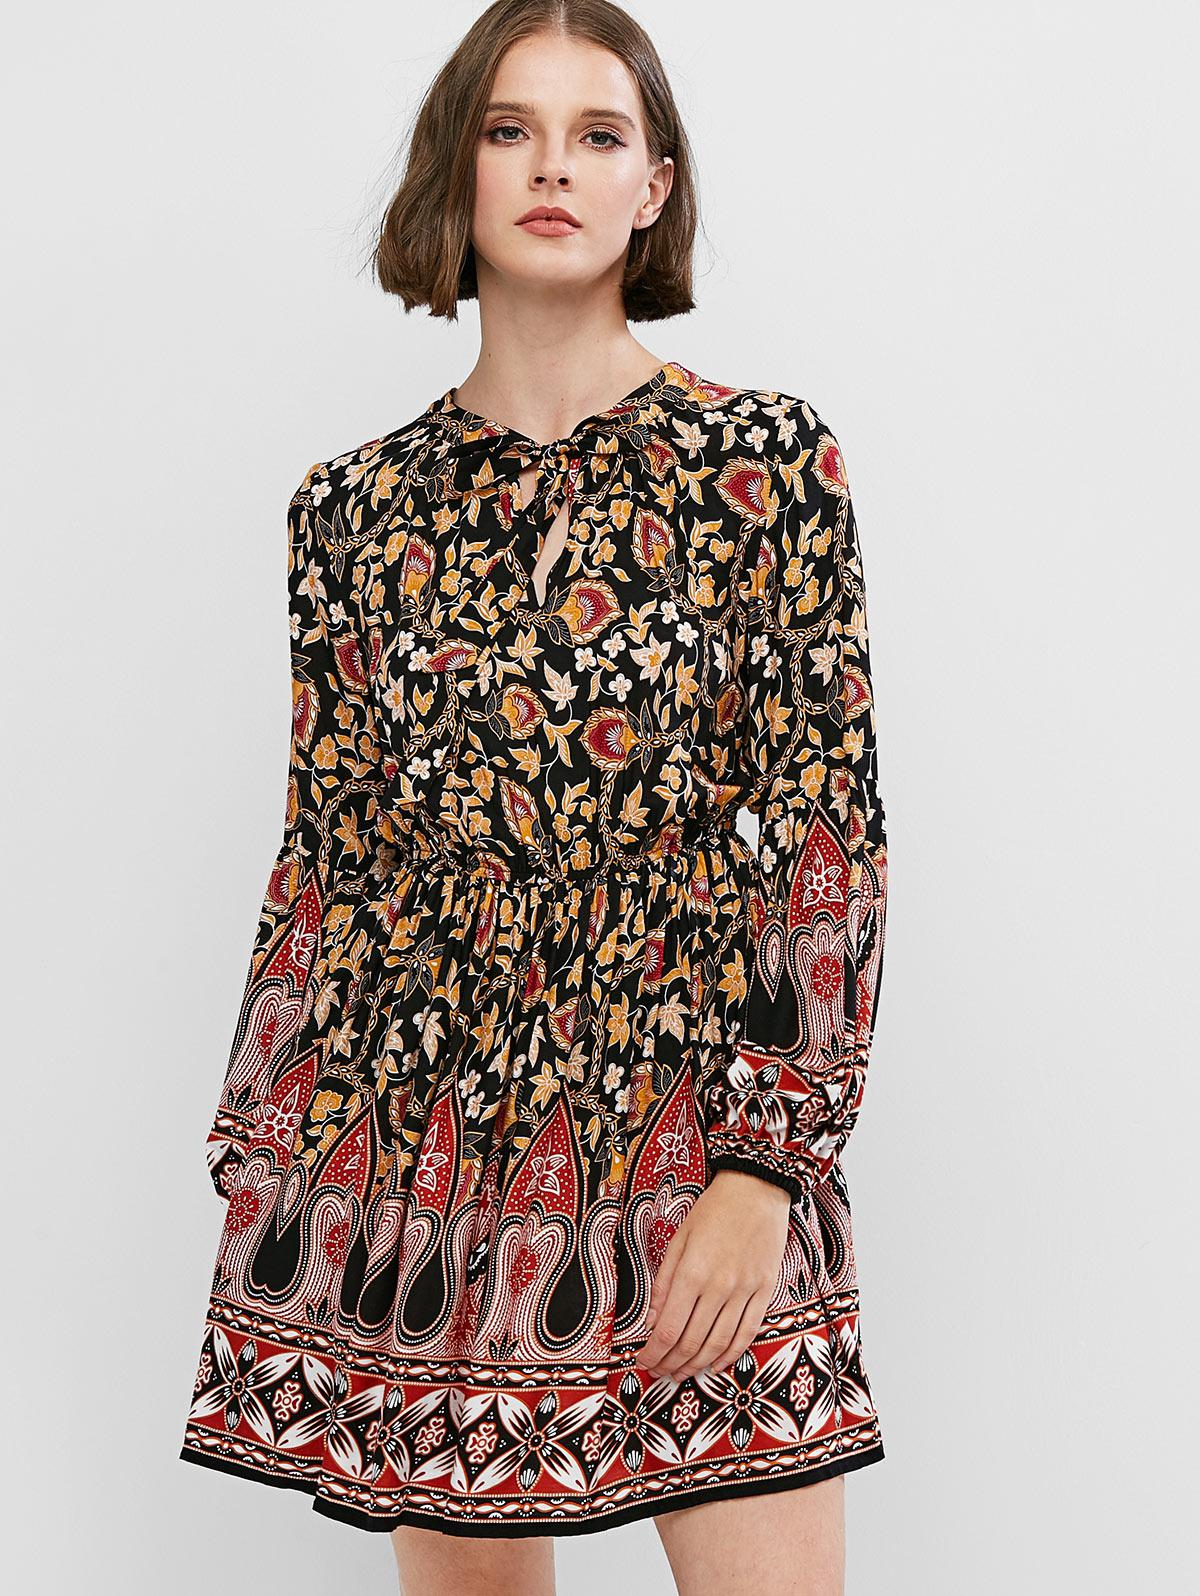 ZAFUL Bohemian Print Lantern Sleeve Mini A Line Dress